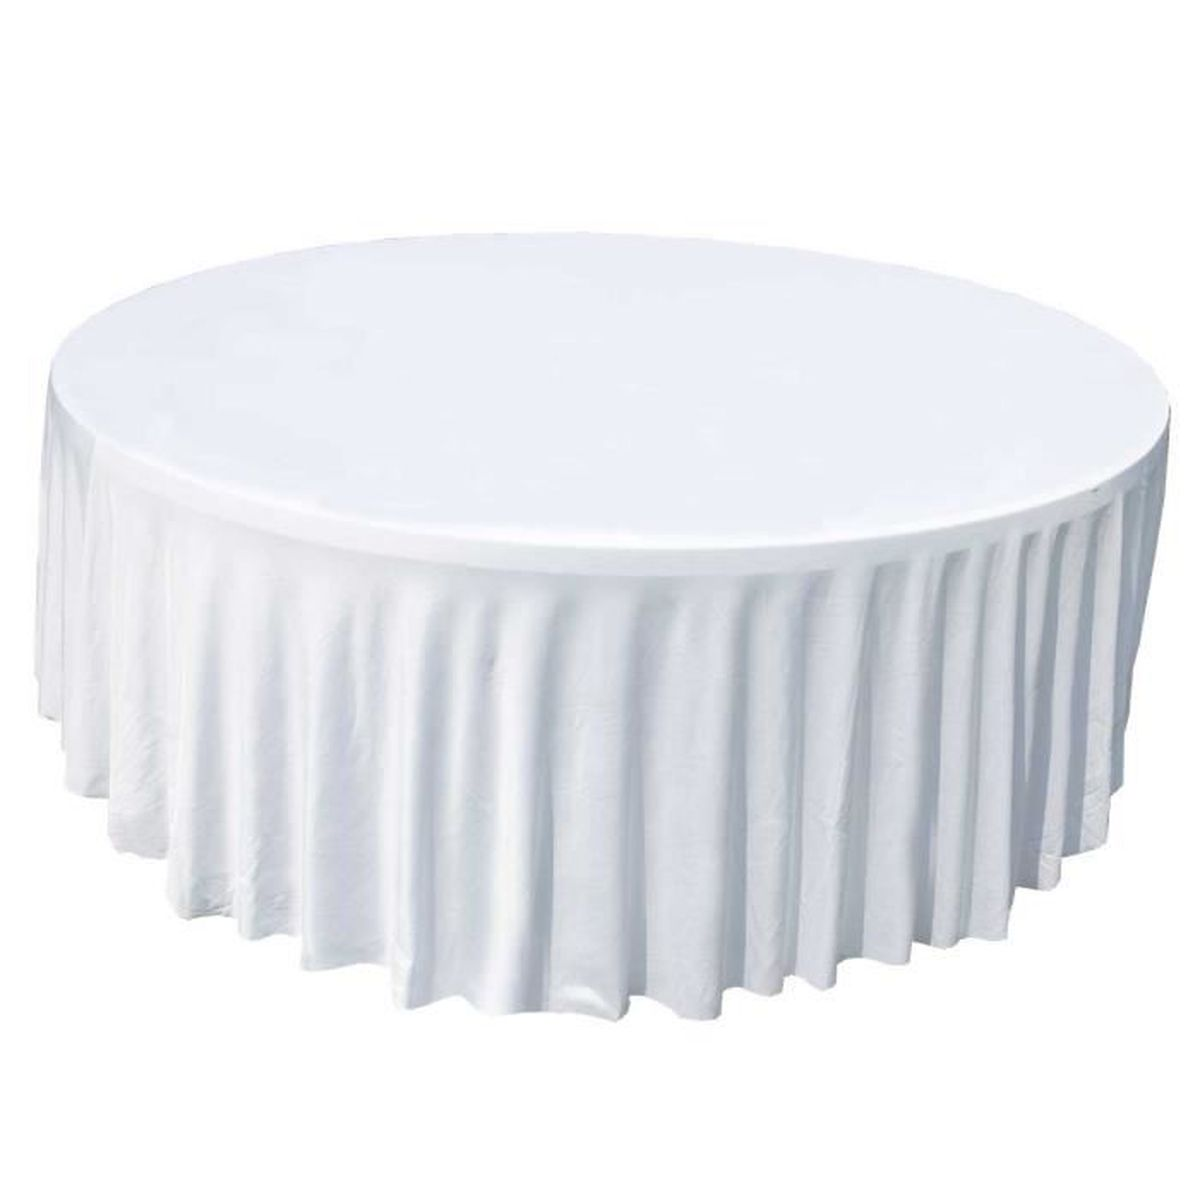 nappe pour table ronde 150cm blanche achat vente housse meuble jardin housse nappe ronde. Black Bedroom Furniture Sets. Home Design Ideas